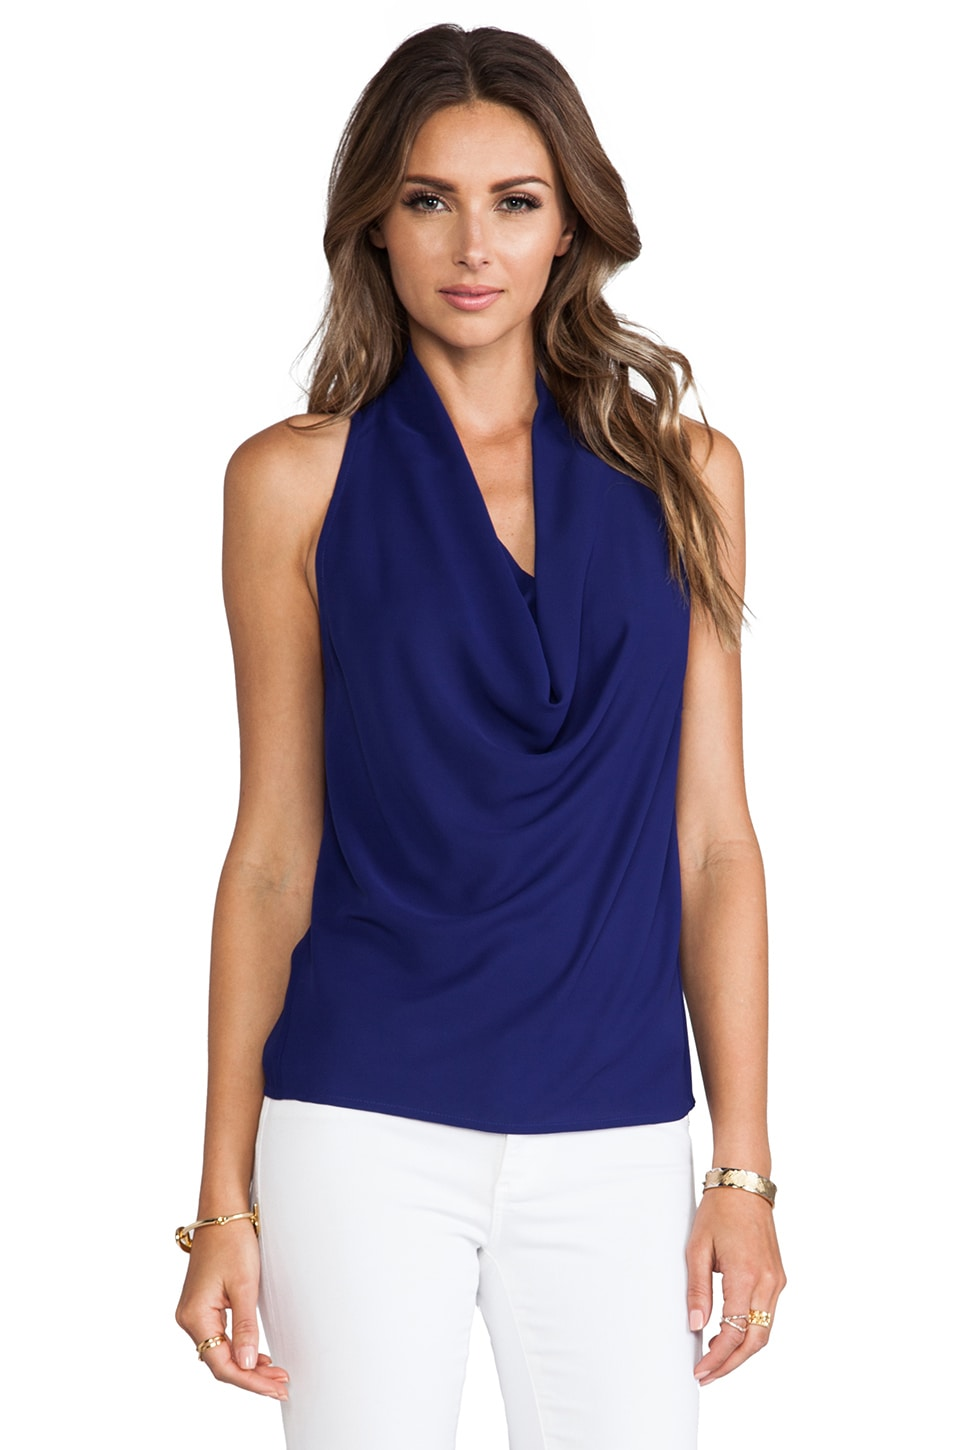 Trina Turk Raissa Top in Ultramarine